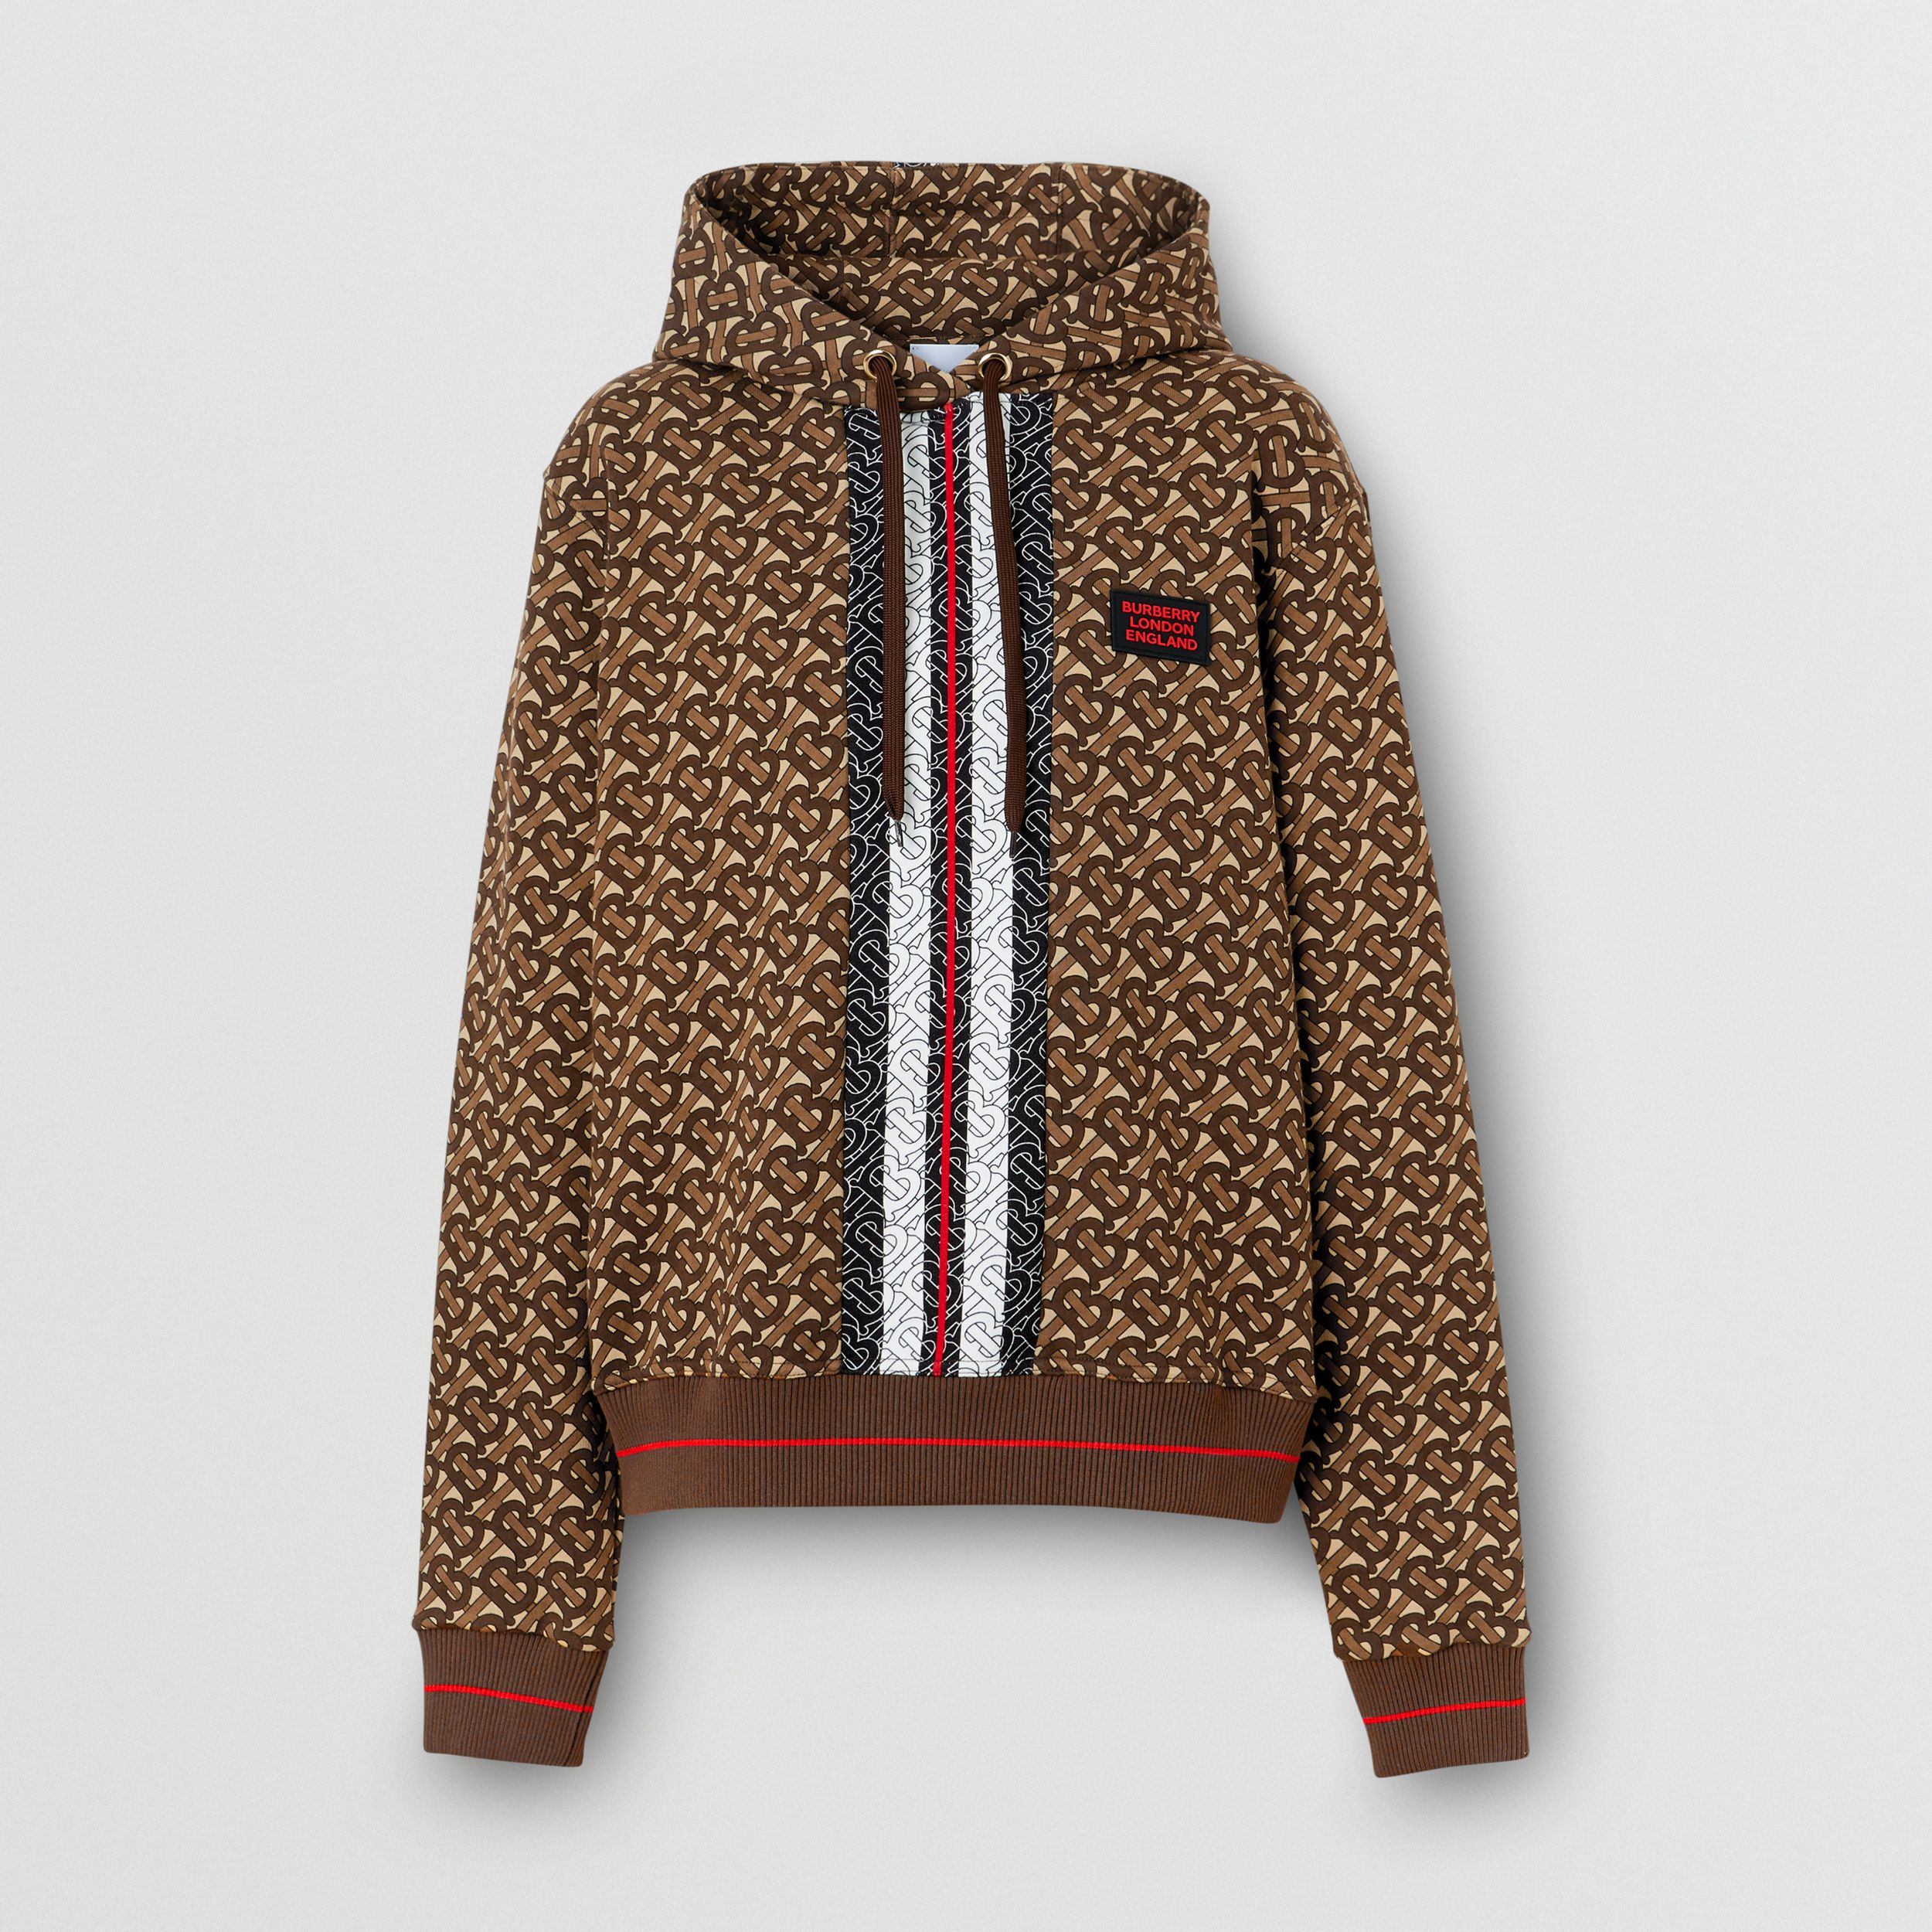 Monogram Stripe Print Cotton Oversized Hoodie in Bridle Brown - Women | Burberry - 4